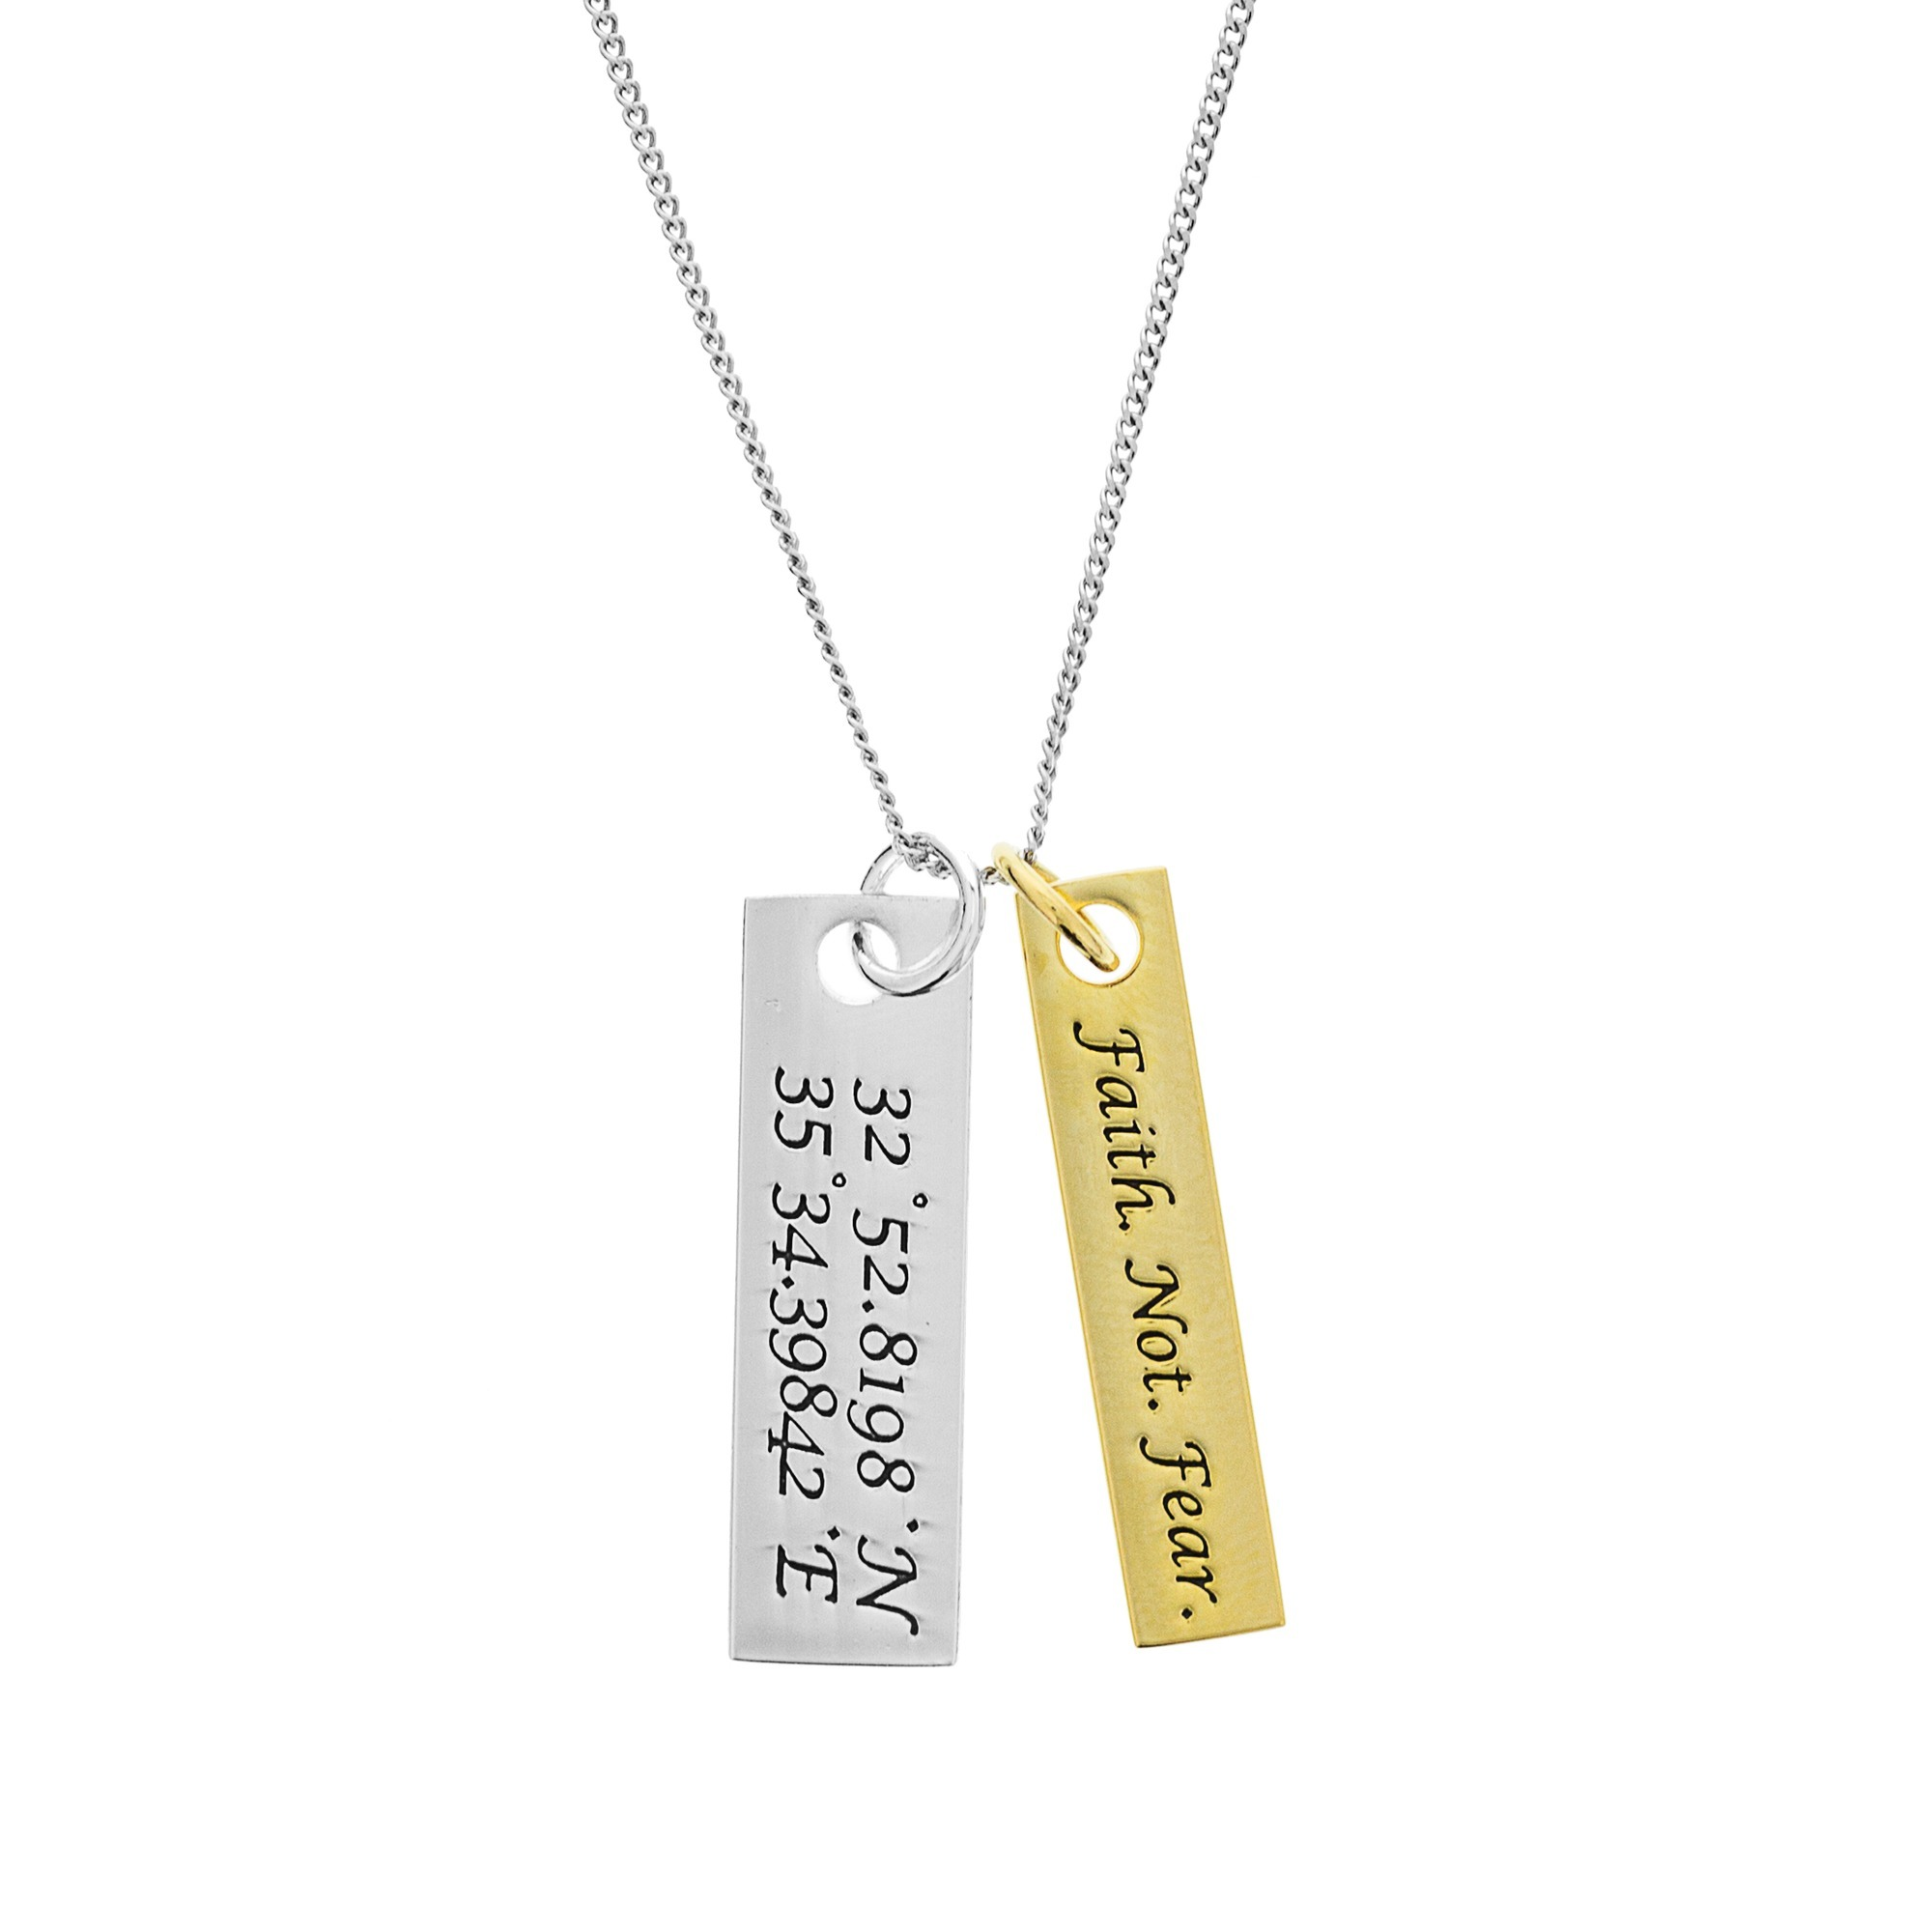 coordinate collection necklace necklaces legend coordinates a